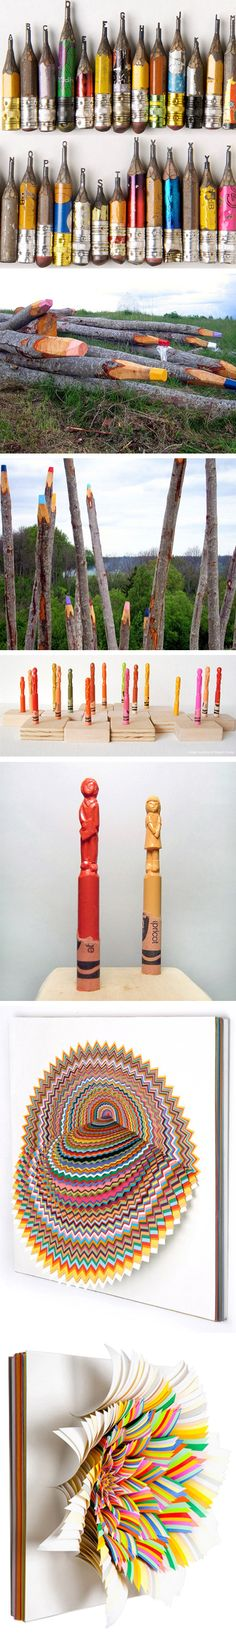 [This is just unreal. Look at the top one...the alphabet carved out of pencils? c'mon now] Dalton Ghetti {alphabet carved pencils}, Jonna Pohjalainen {log pencil crayon installation}, Diem Chau {carved crayons}, and Jennifer Stark {cut-paper sculptures} these people have too much time... lol :D